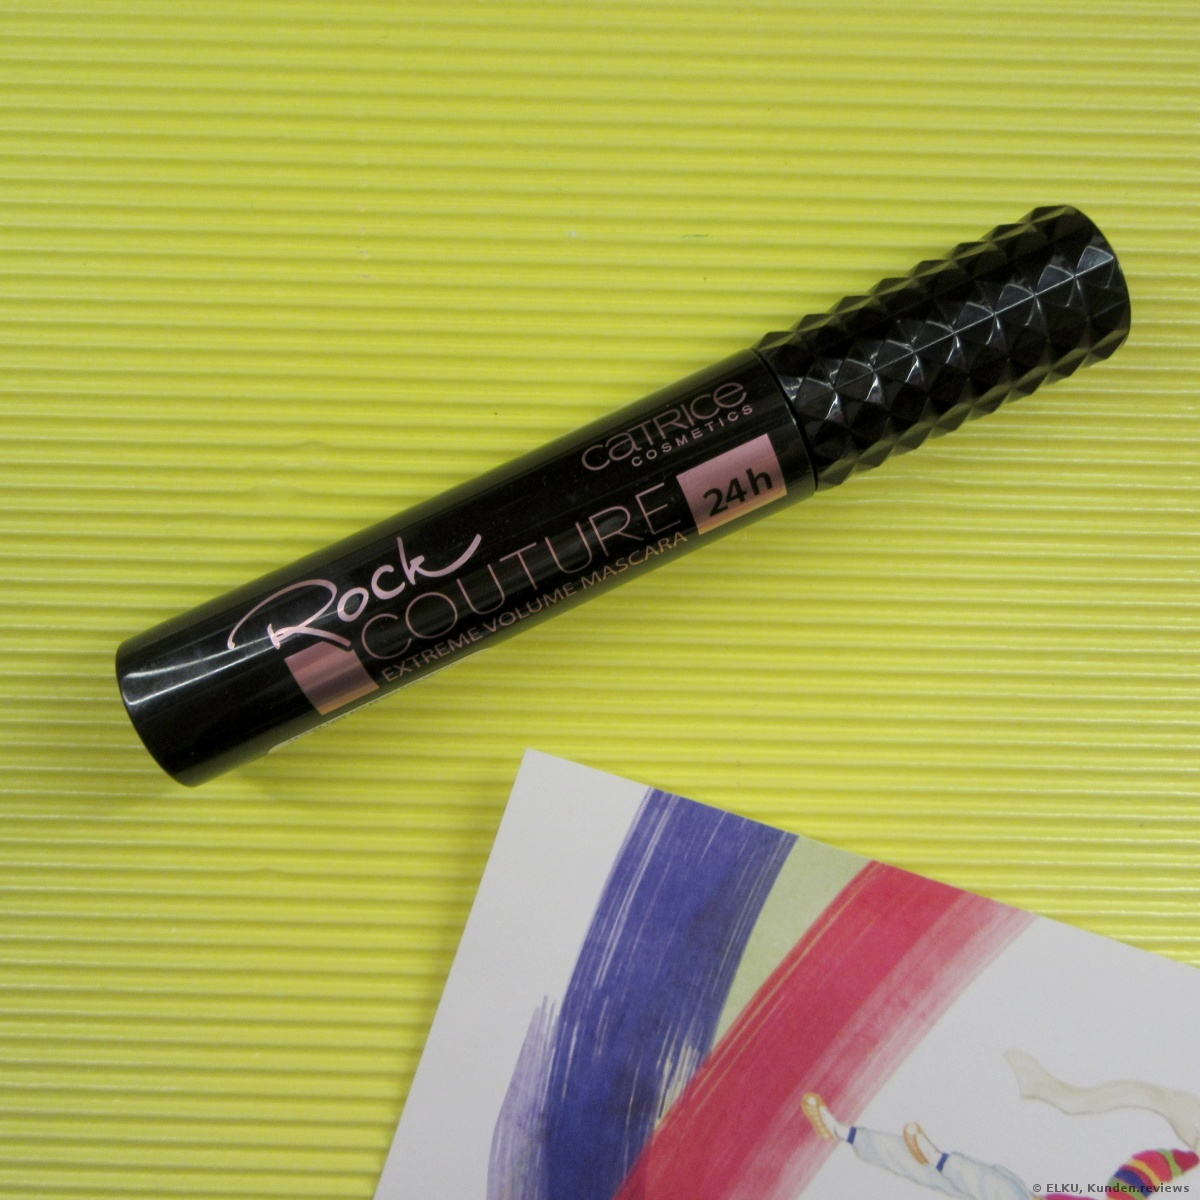 Catrice Rock Couture Extreme Volume Mascara 24h